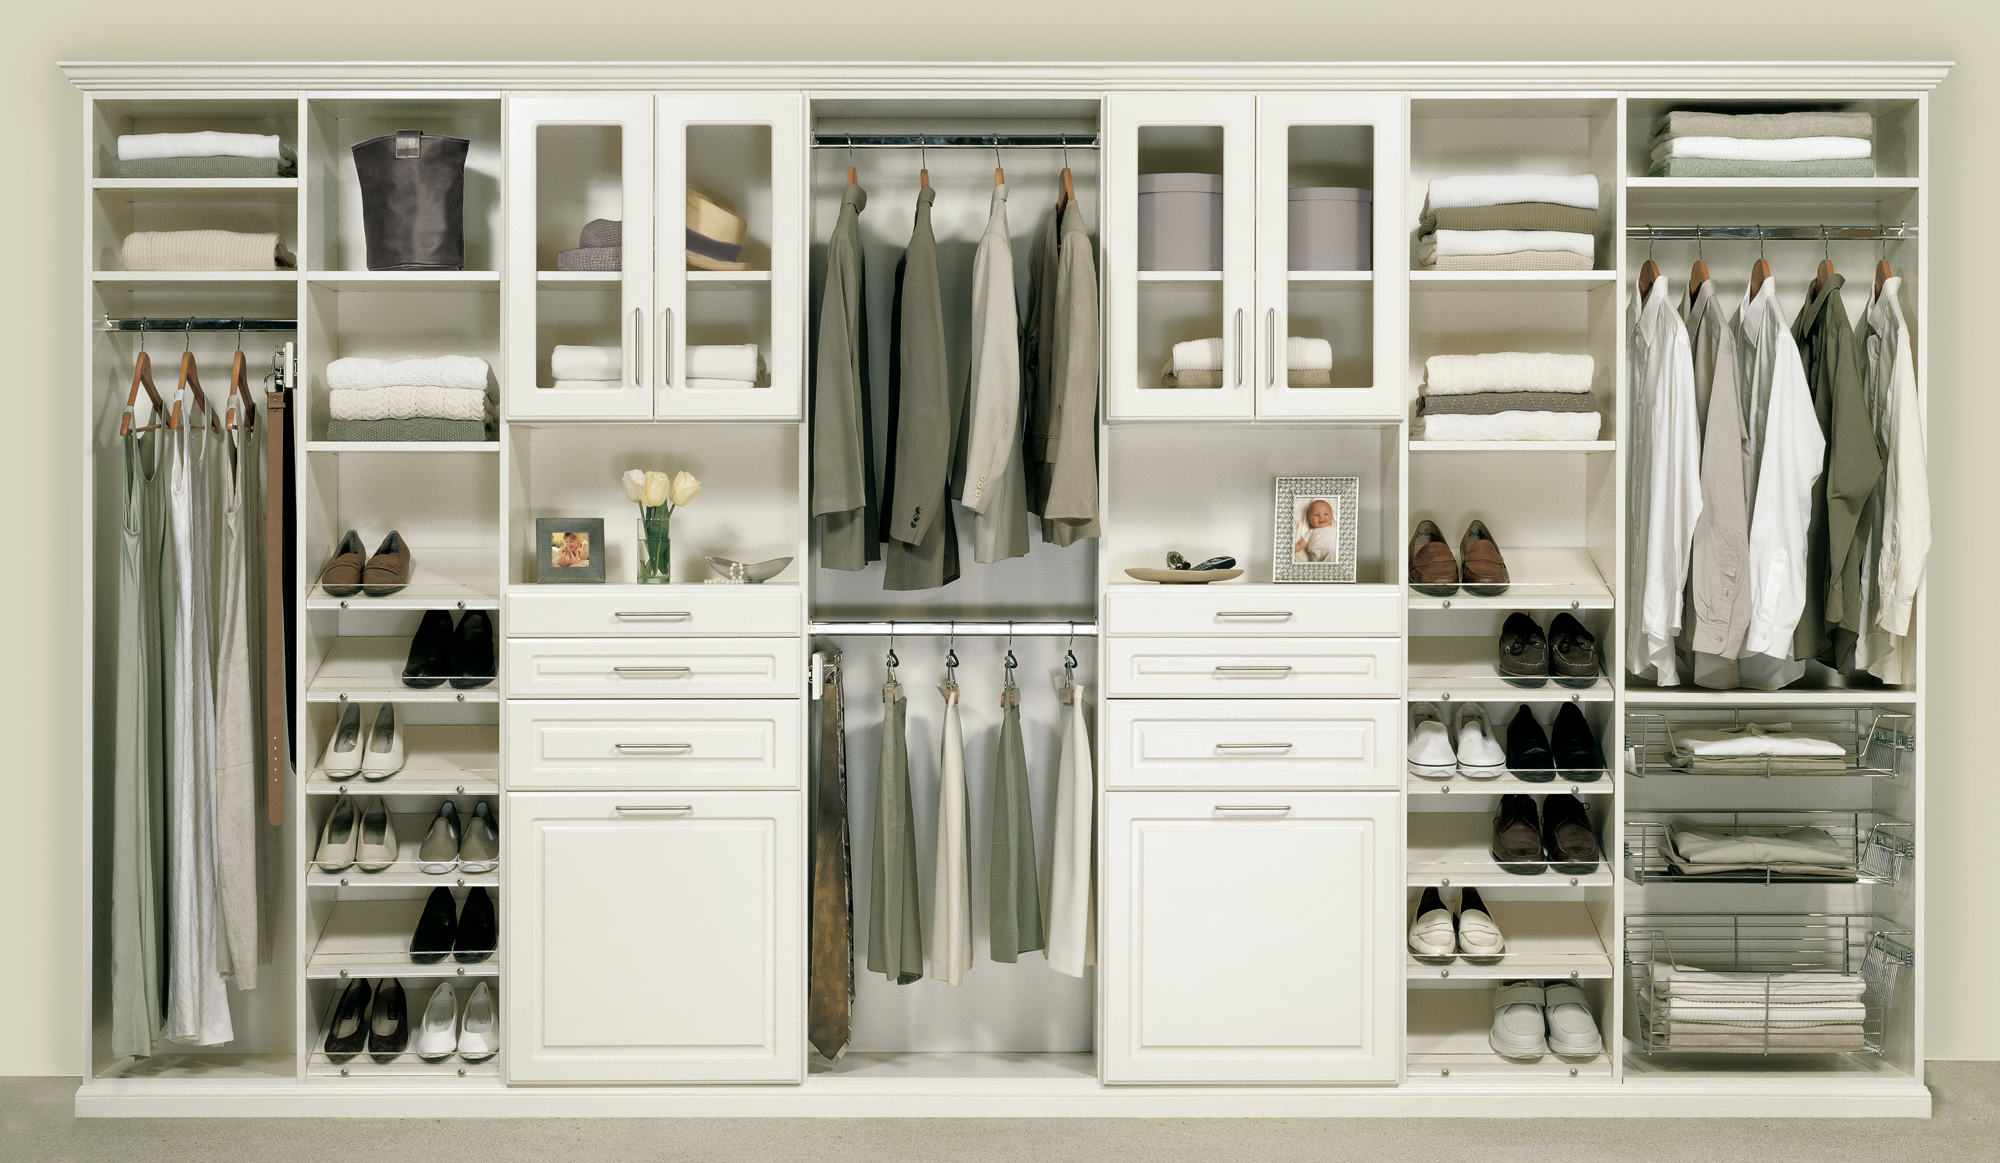 Diy Walk In Closet | Prefab Closet Kits | Diy Walkin Closet